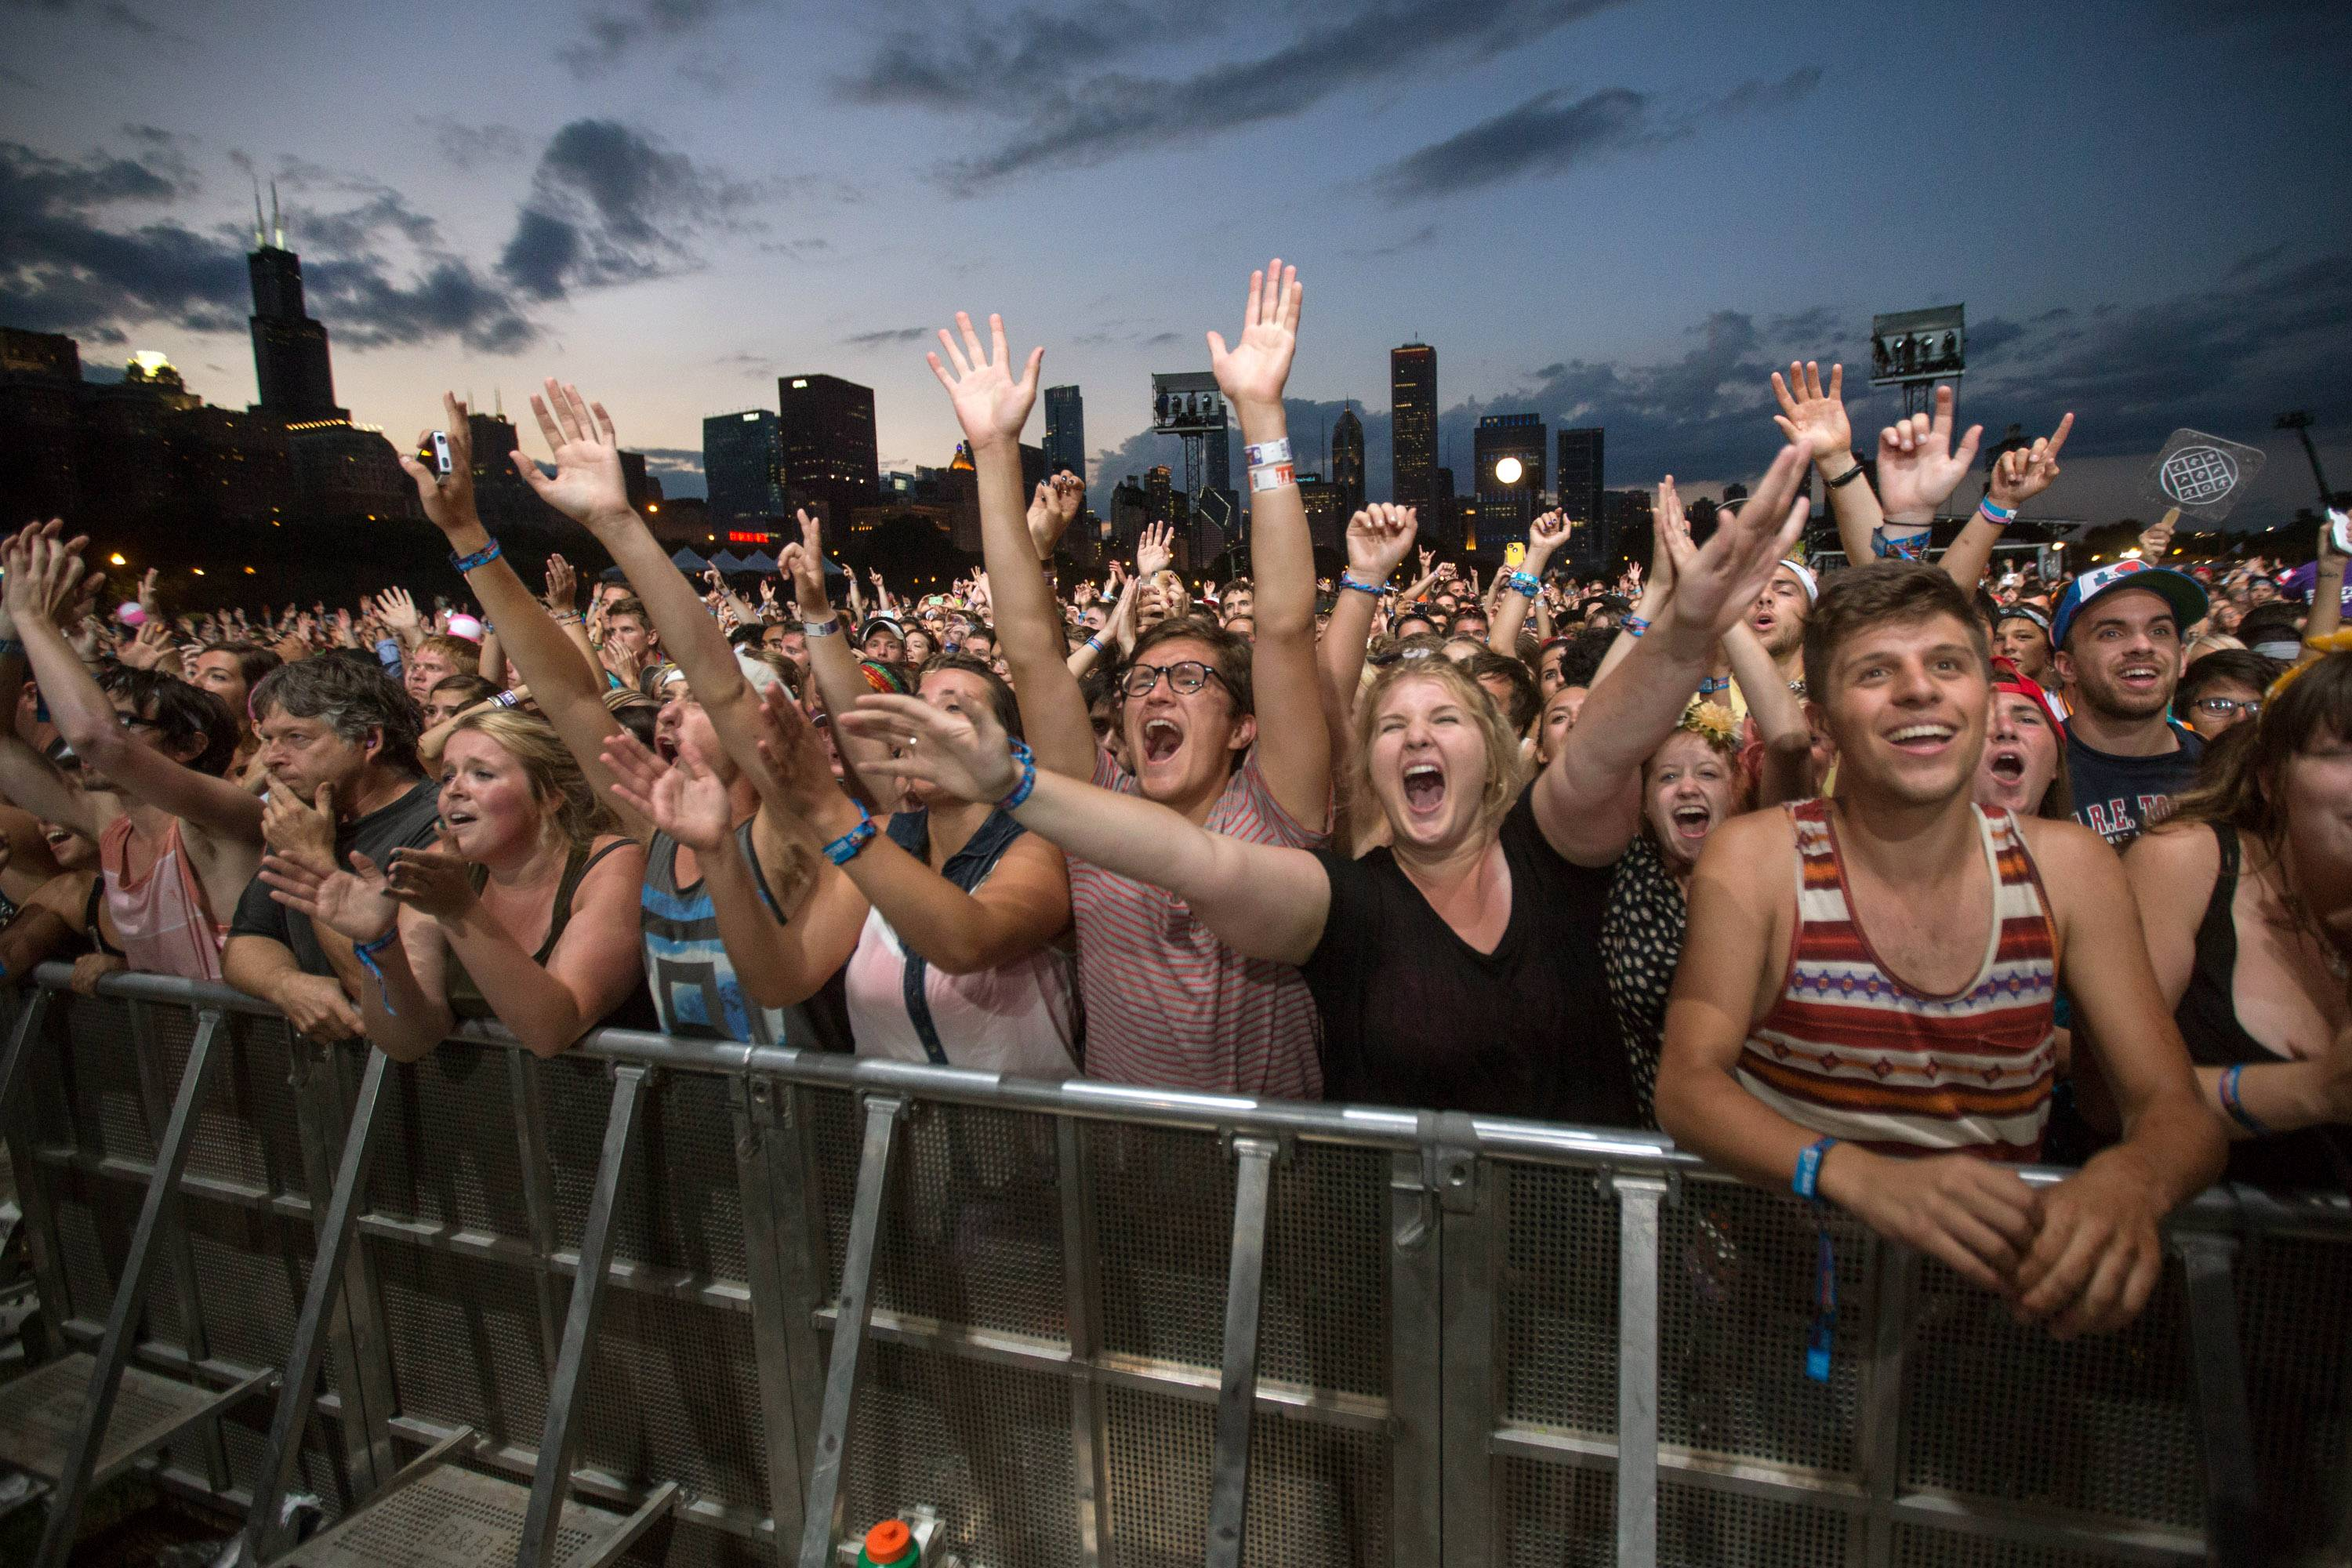 This 2013 file photo shows fans reacting while Mumford & Sons performs at the Lollapalooza Festival in Chicago.